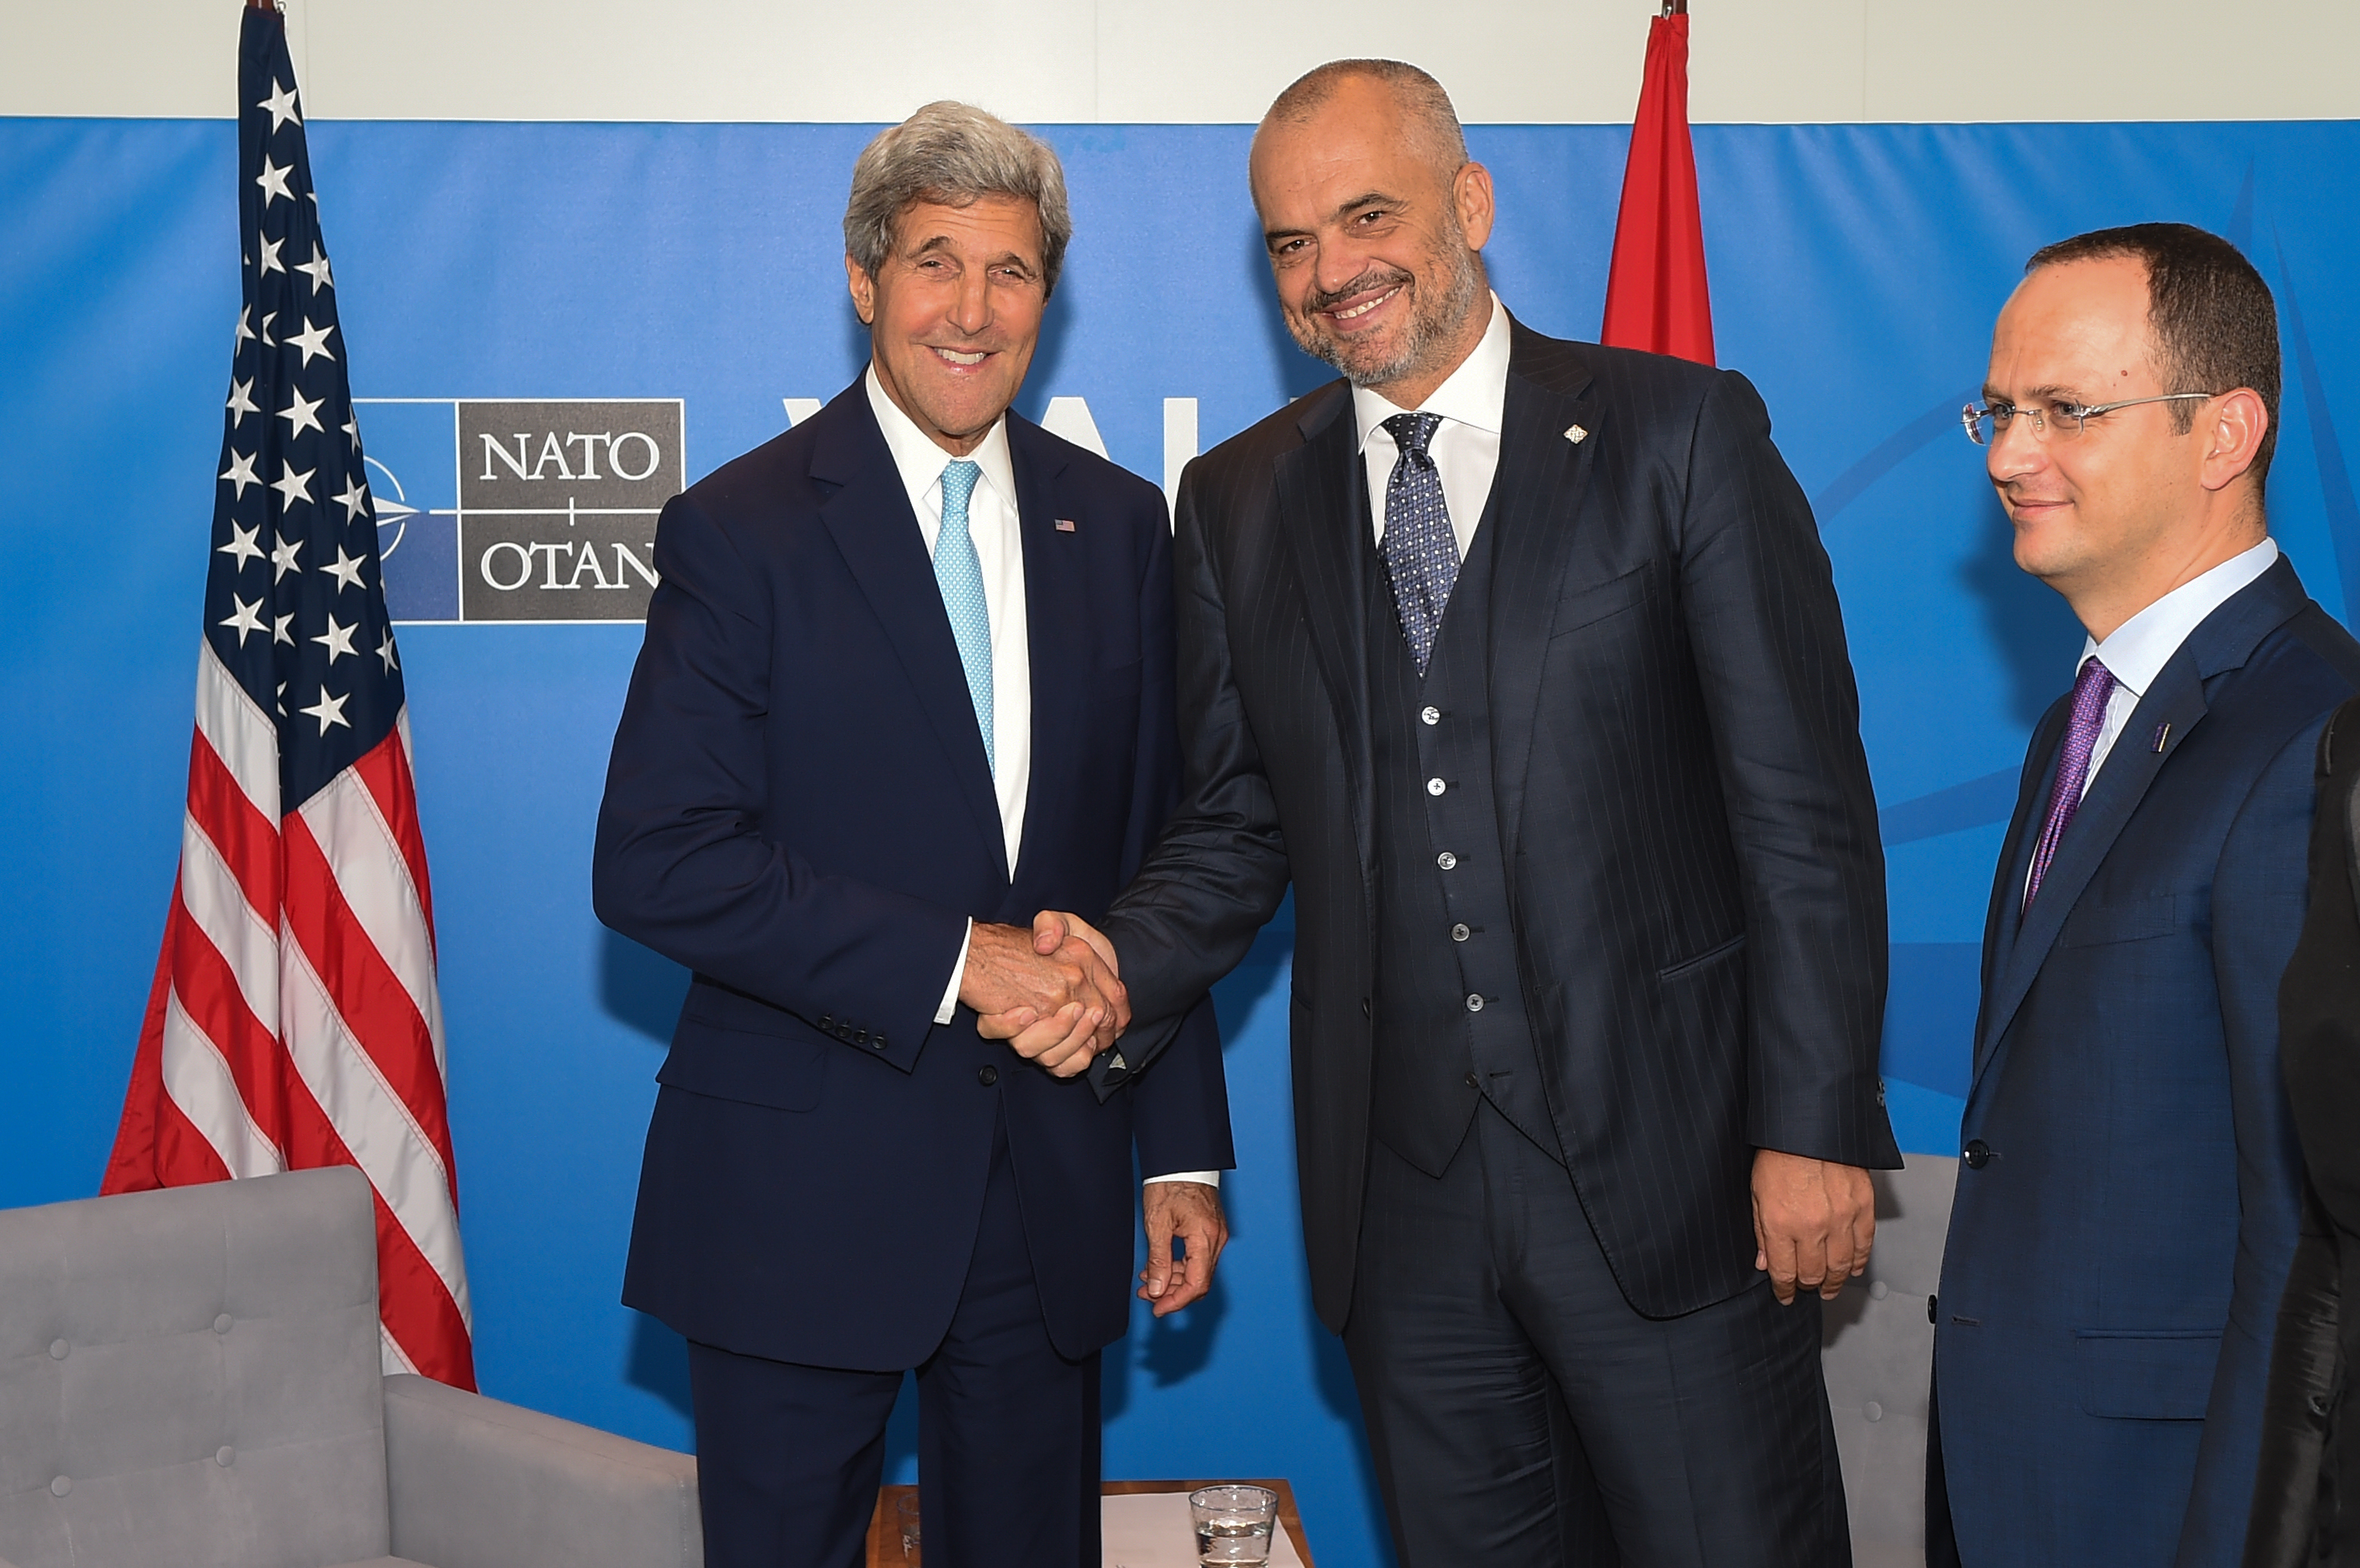 secretary_kerry_shakes_hands_with_albanian_prime_minister_rama_before_bilateral_meeting_at_nato_summit_in_wales_14961134157